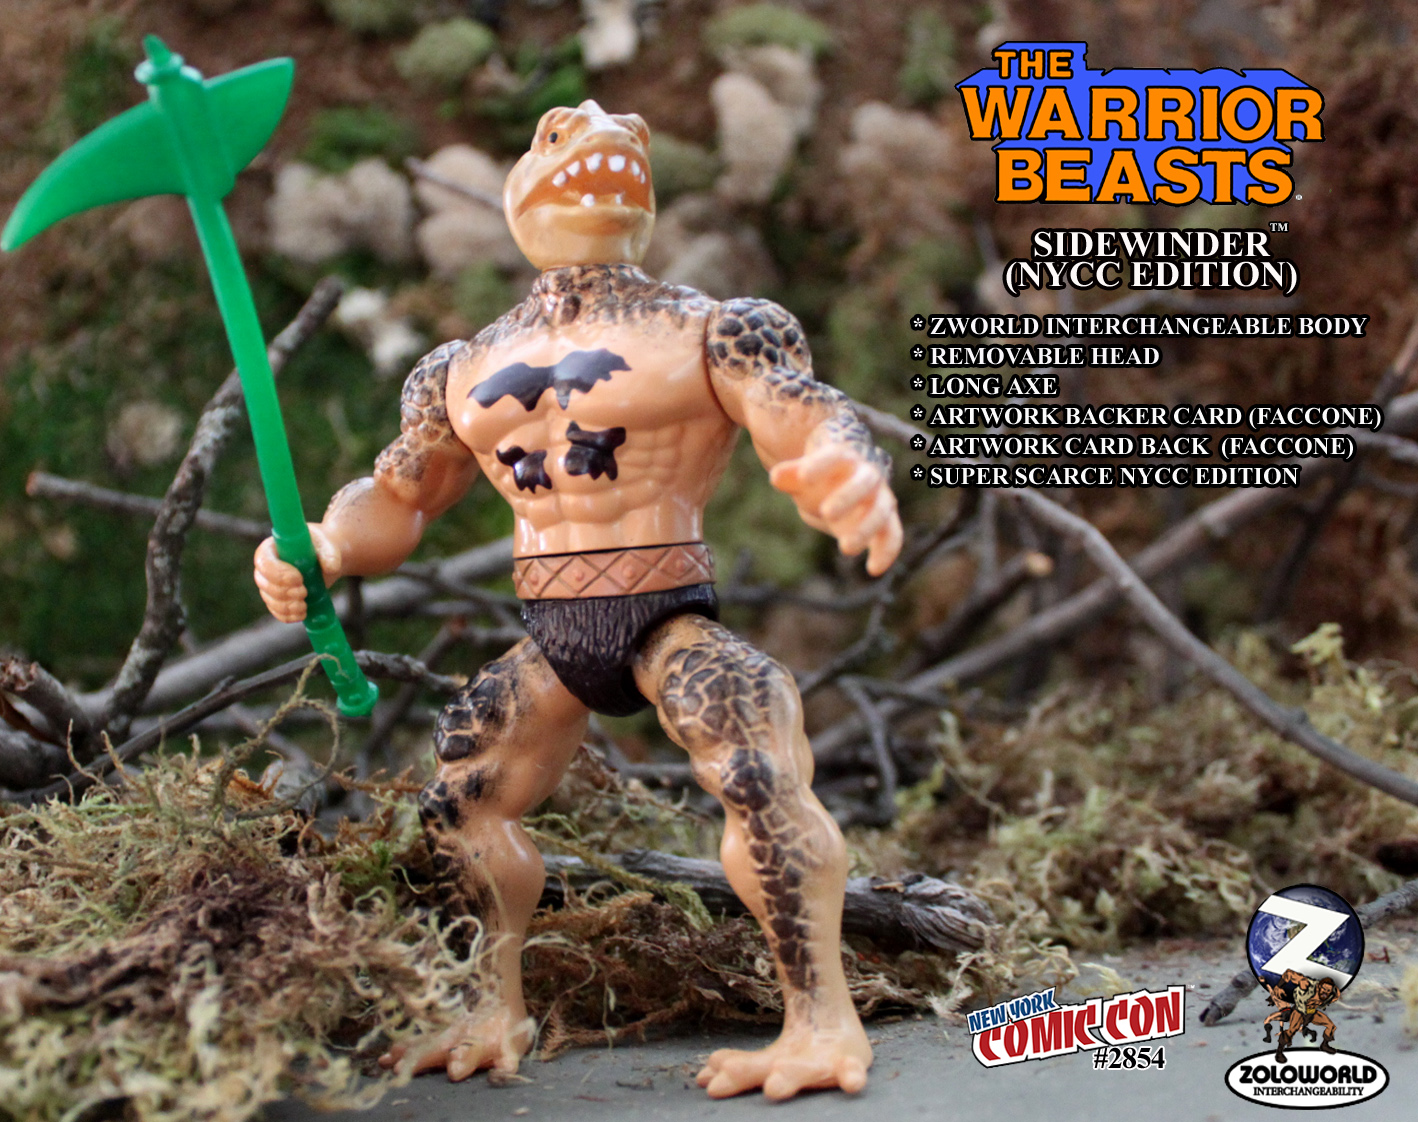 NYCC EXCLUSIVE WARRIOR BEASTS WAVE 2 Sidewinder Action Figure - Click Image to Close